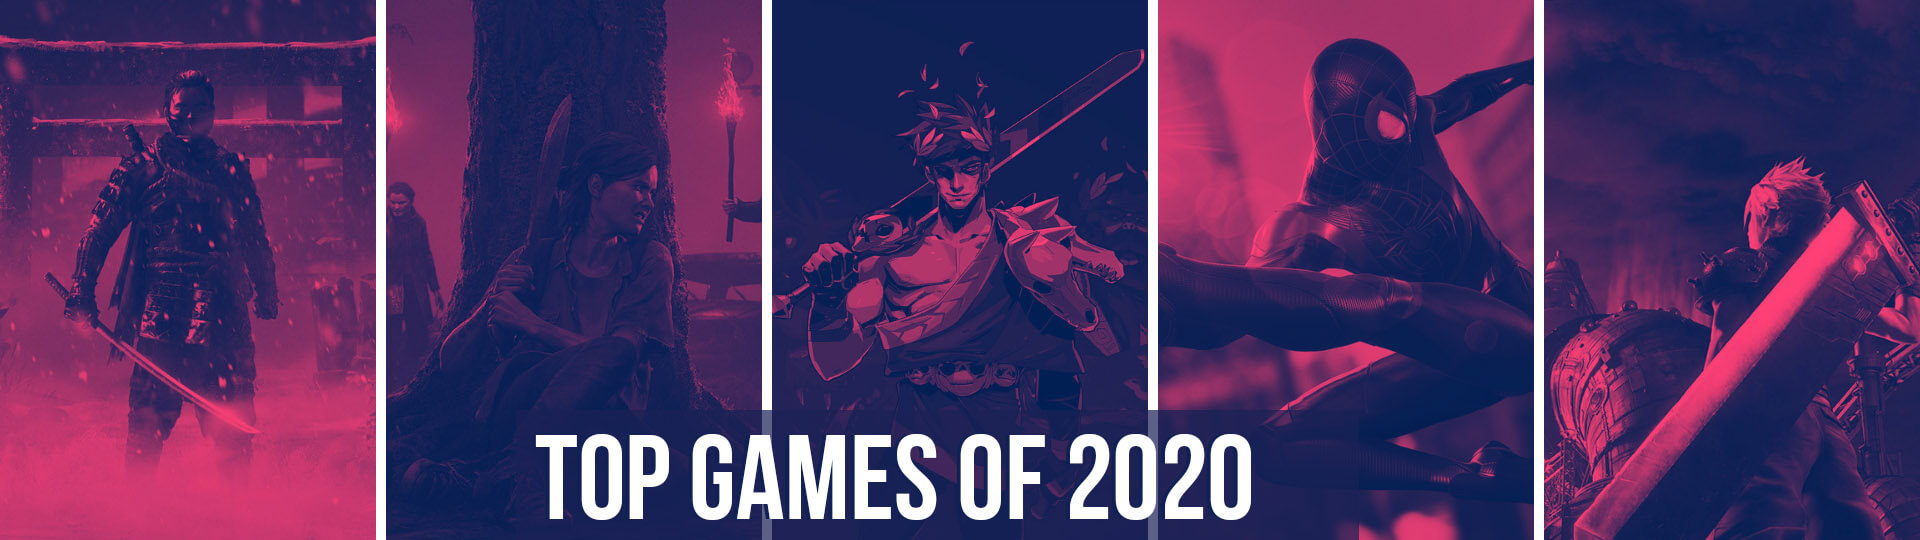 The Top Games of 2020